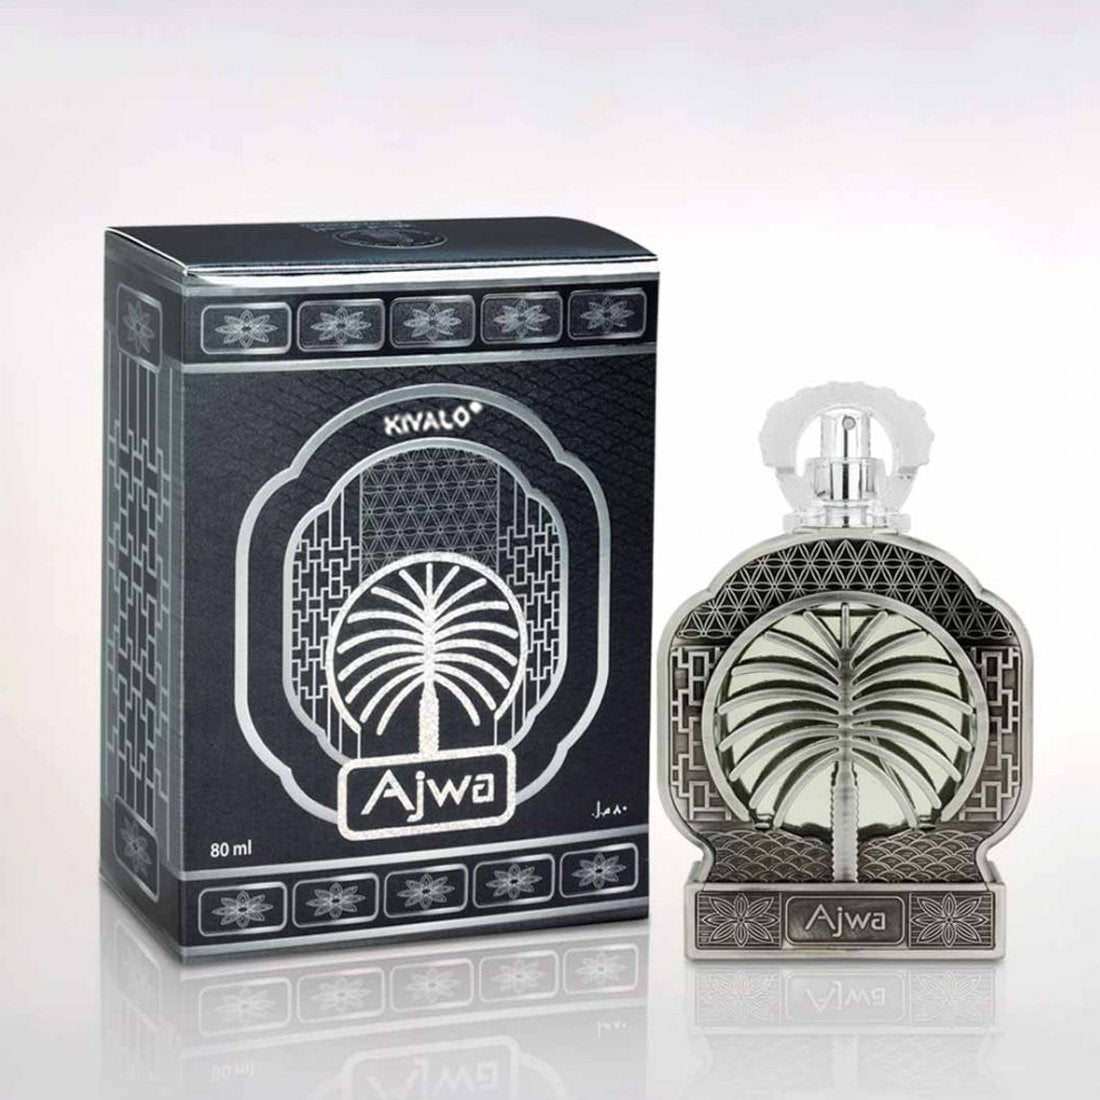 Al Haramain Ajwa Perfume Spray - 80ml